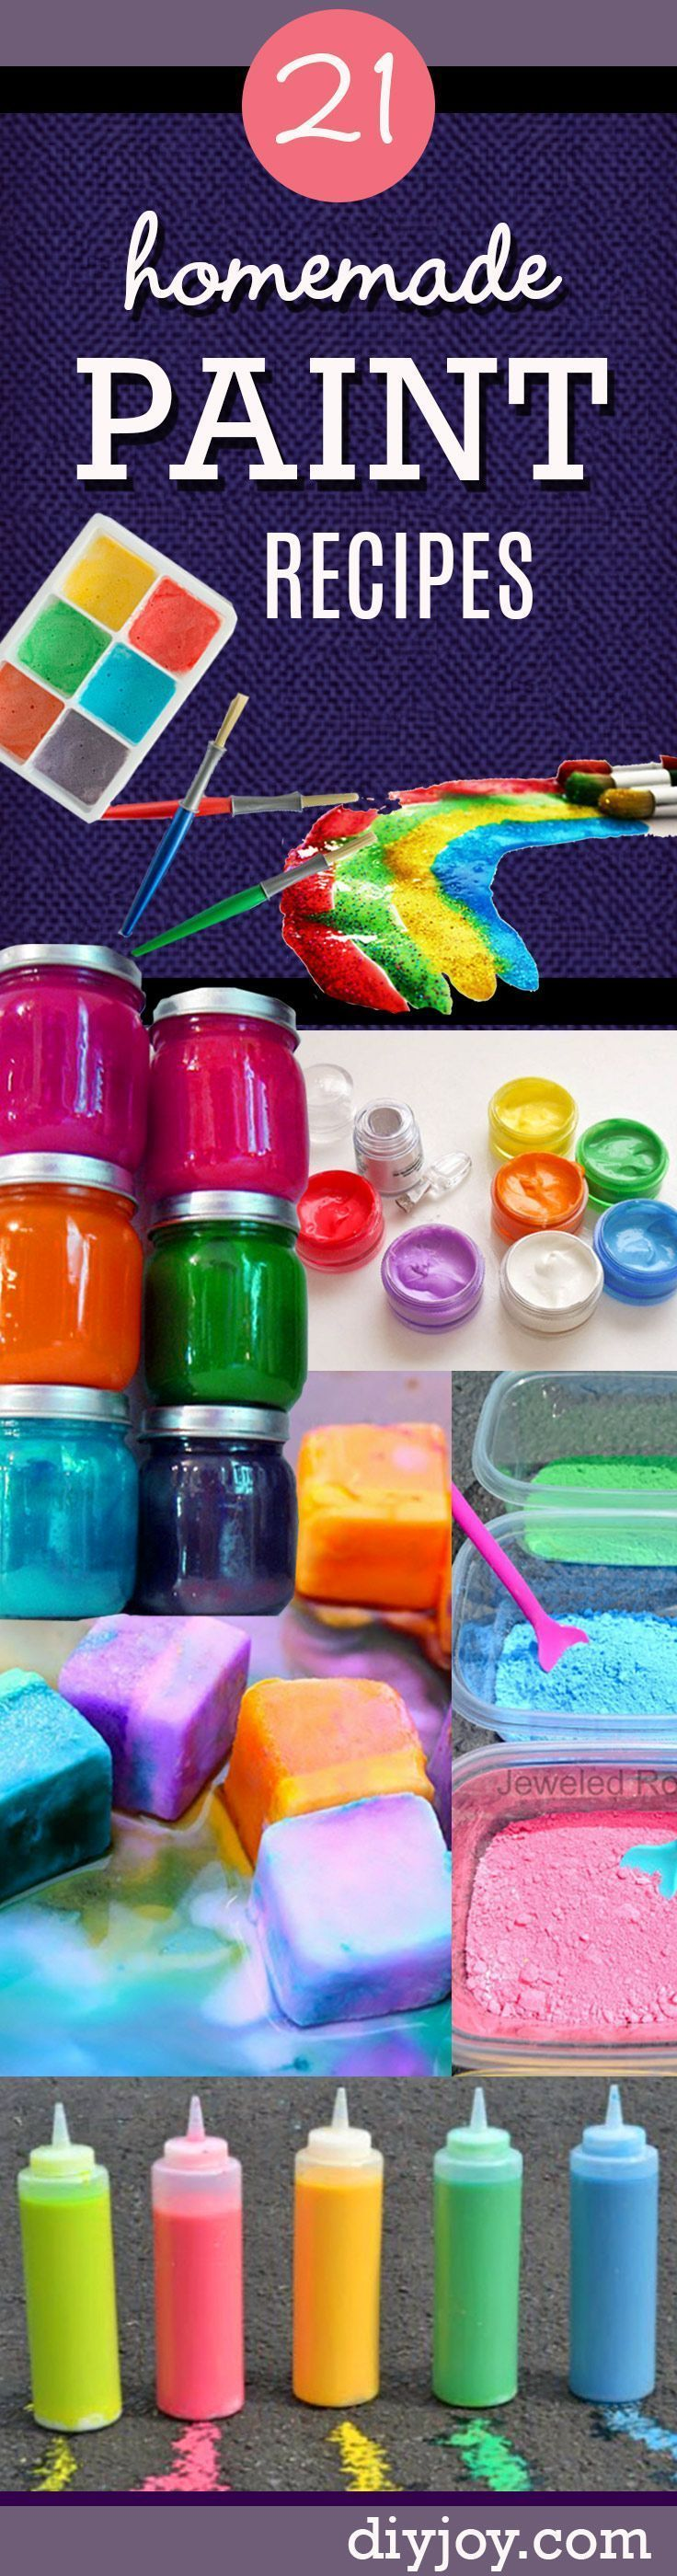 Homemade Crafts For Kids